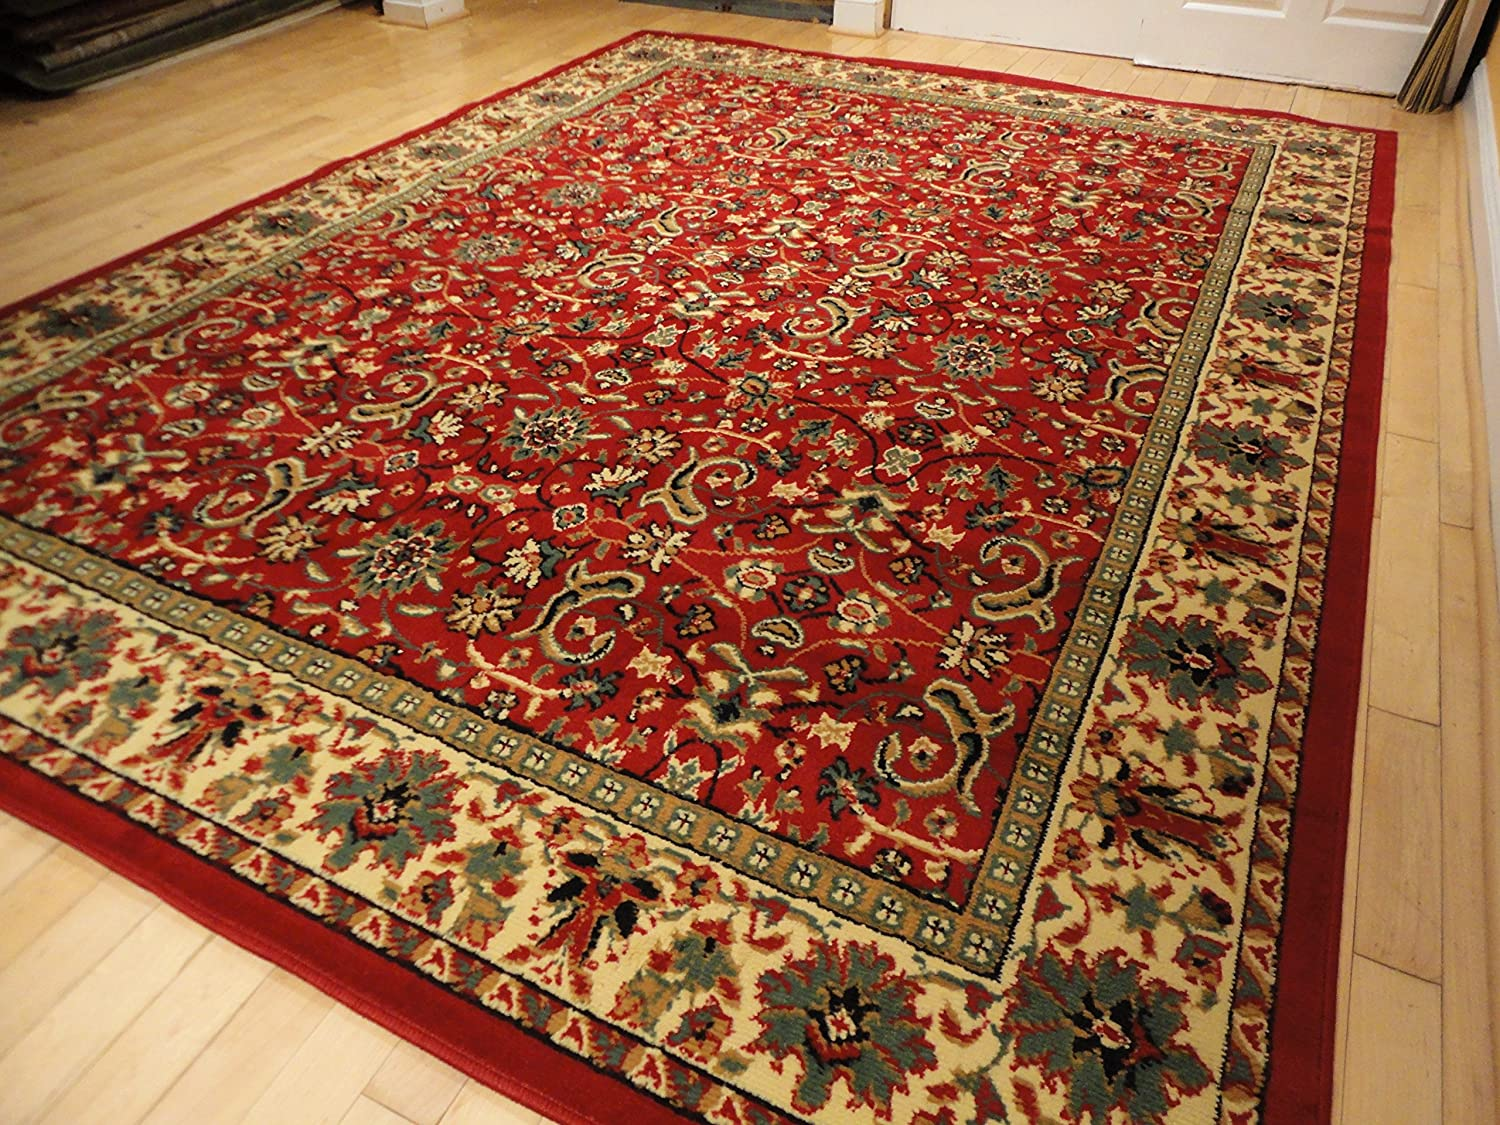 Amazon Red Traditional Rugs 2x3 Persian Rug Area Entrance Carpet 2x8 Hallway Runner Kitchen Bathroom